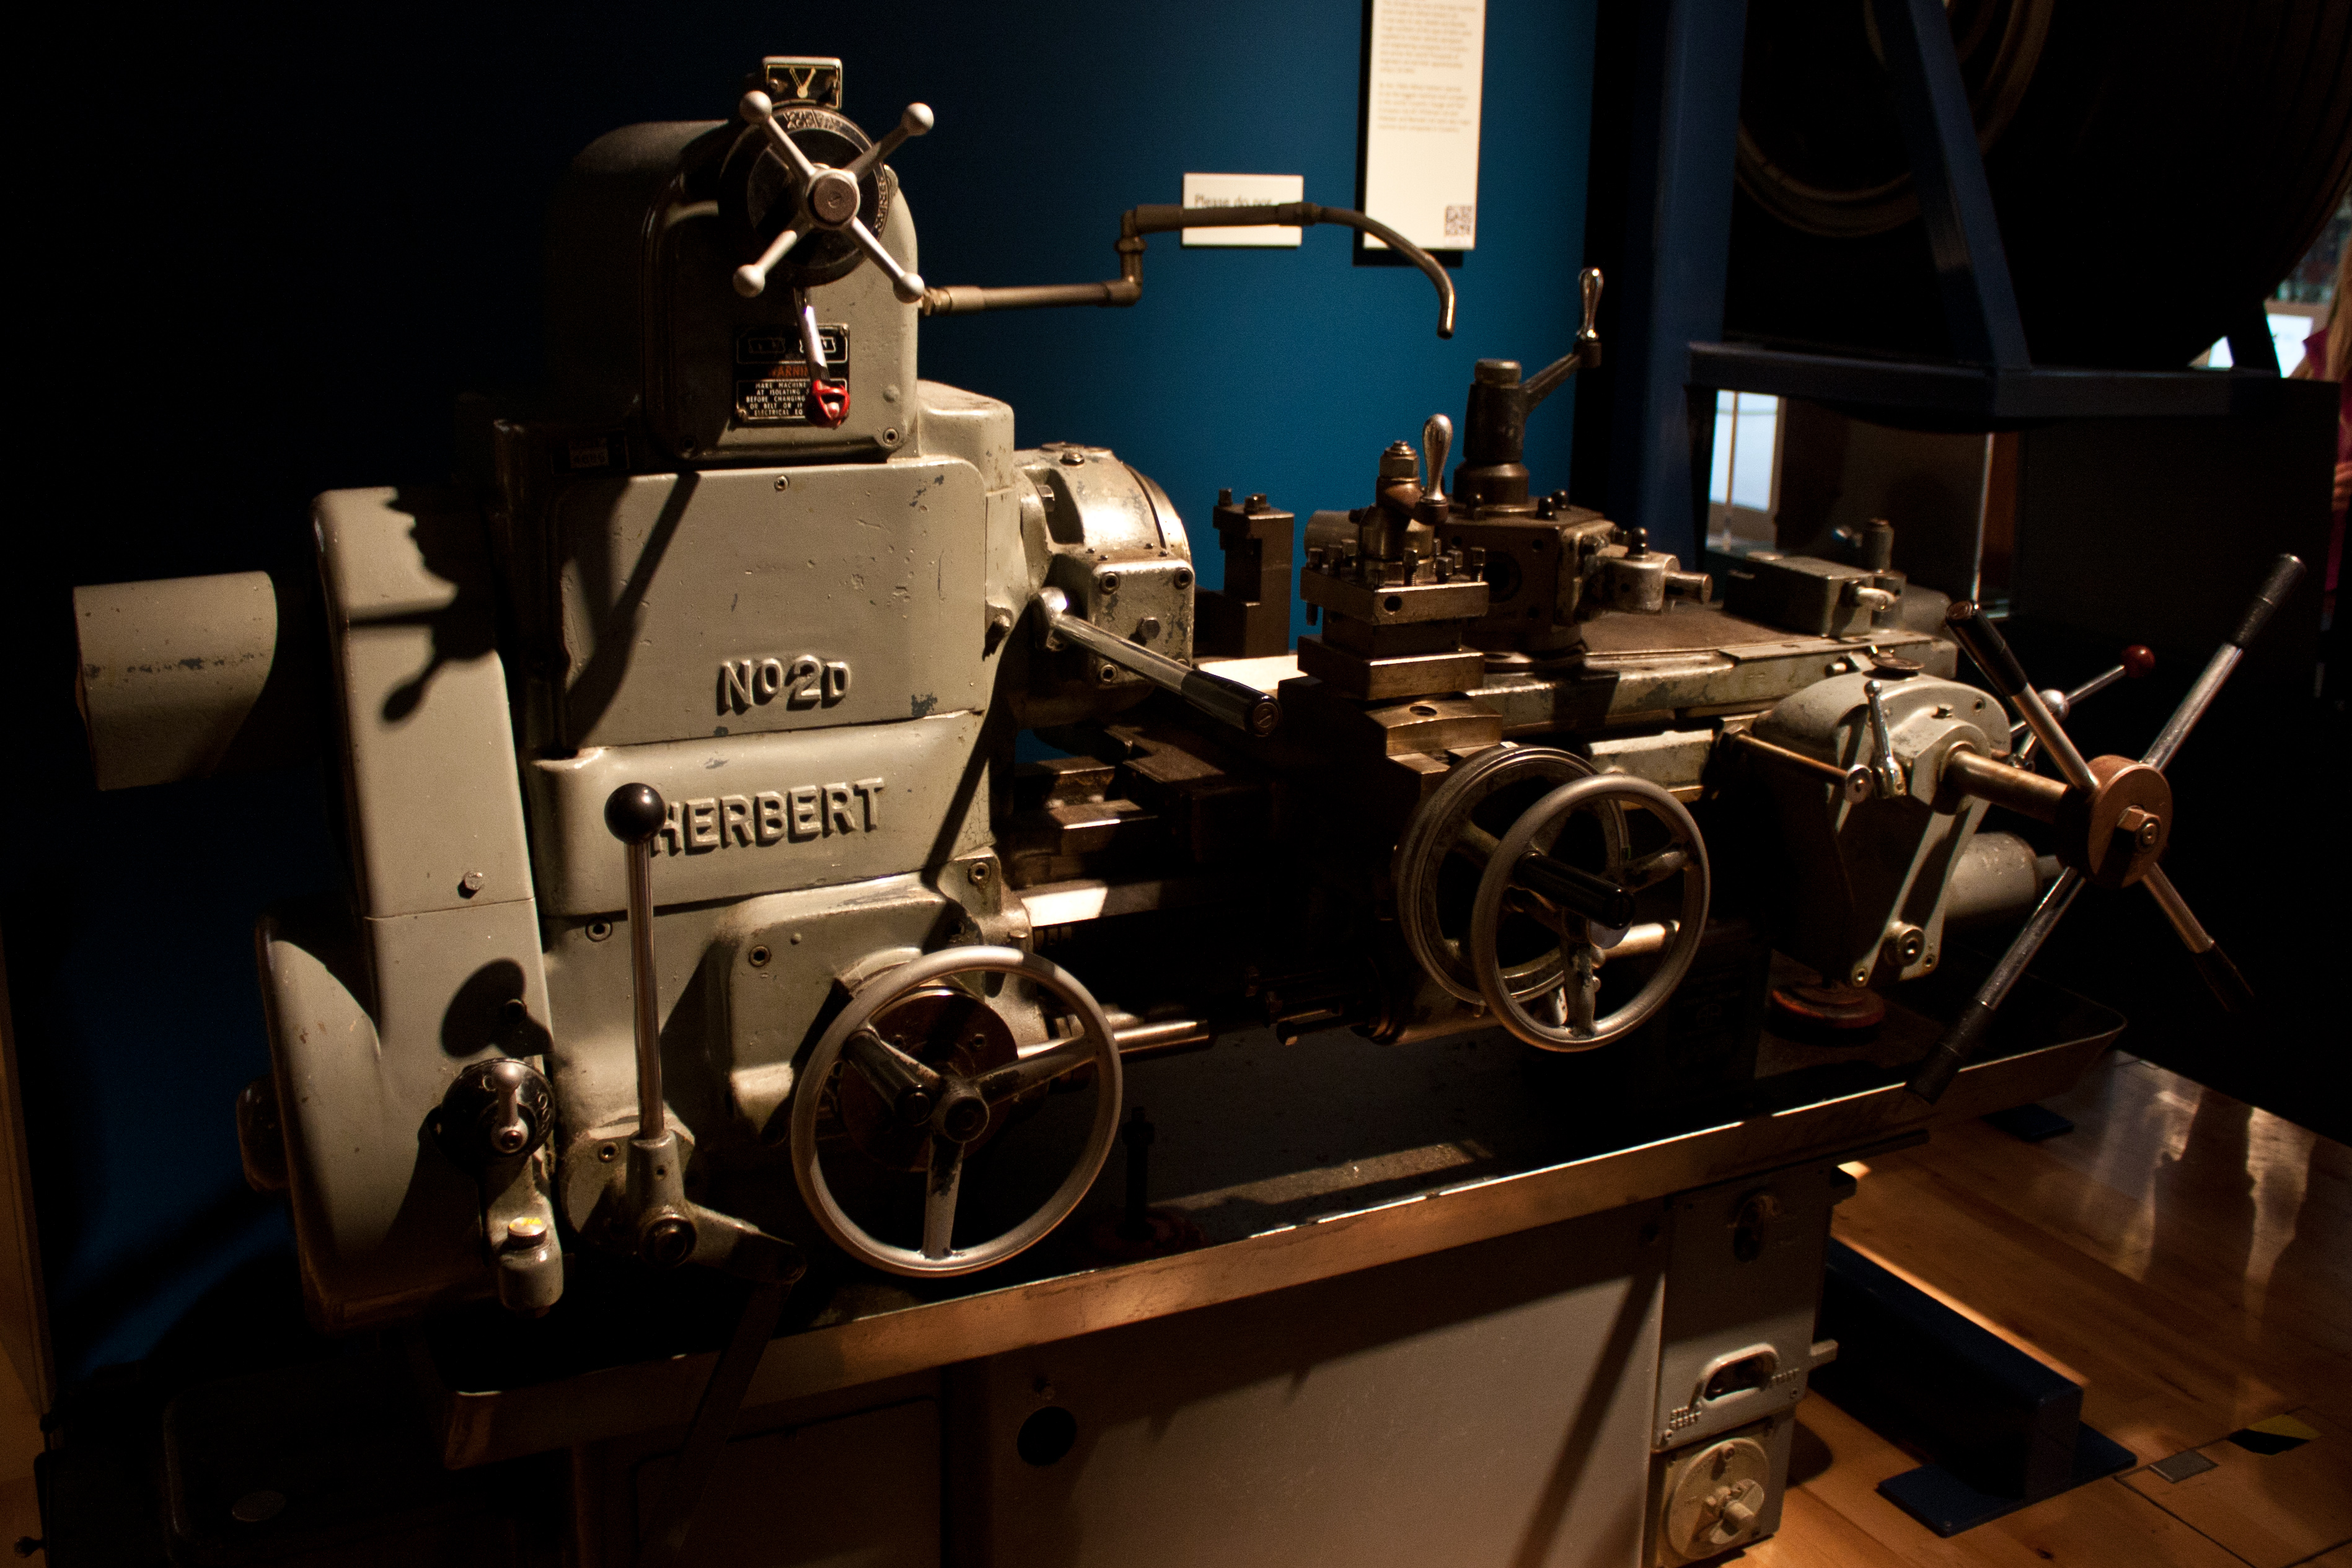 Herbert Art Gallery and Museum, Coventry - Lathe